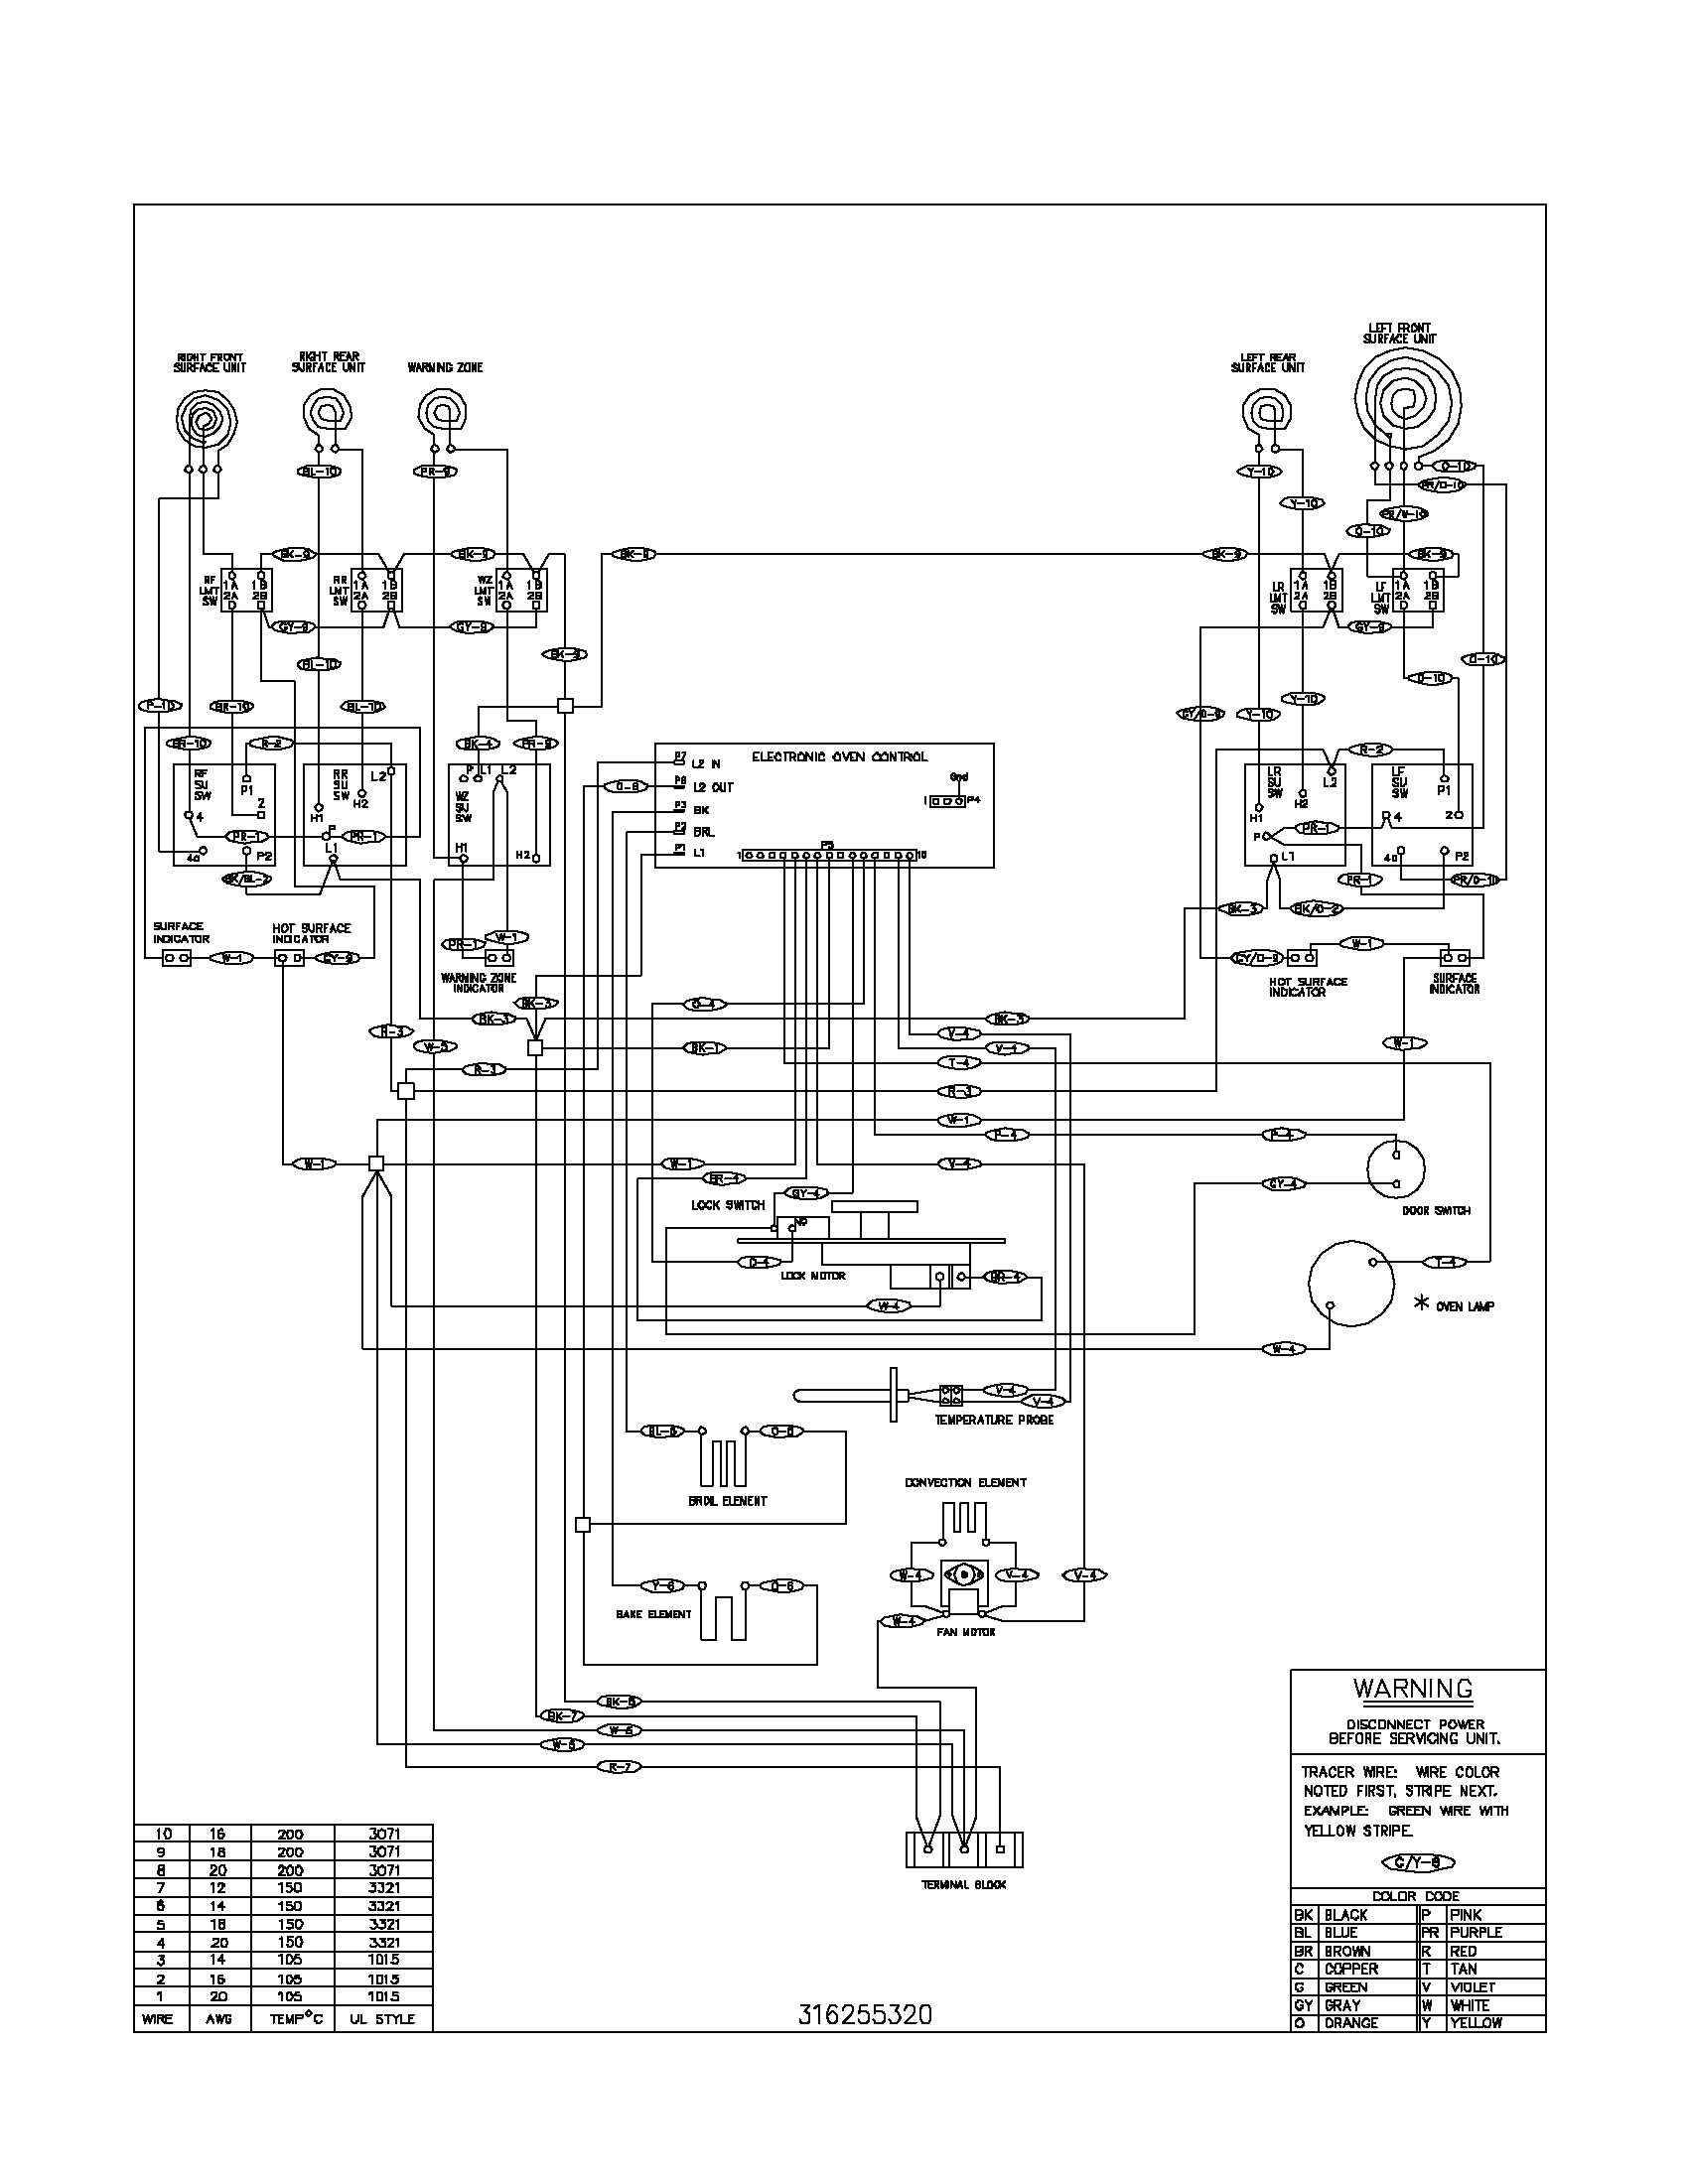 240v stove wiring diagram free download schematic wiring diagram blogestate stove wiring diagram wiring diagram database